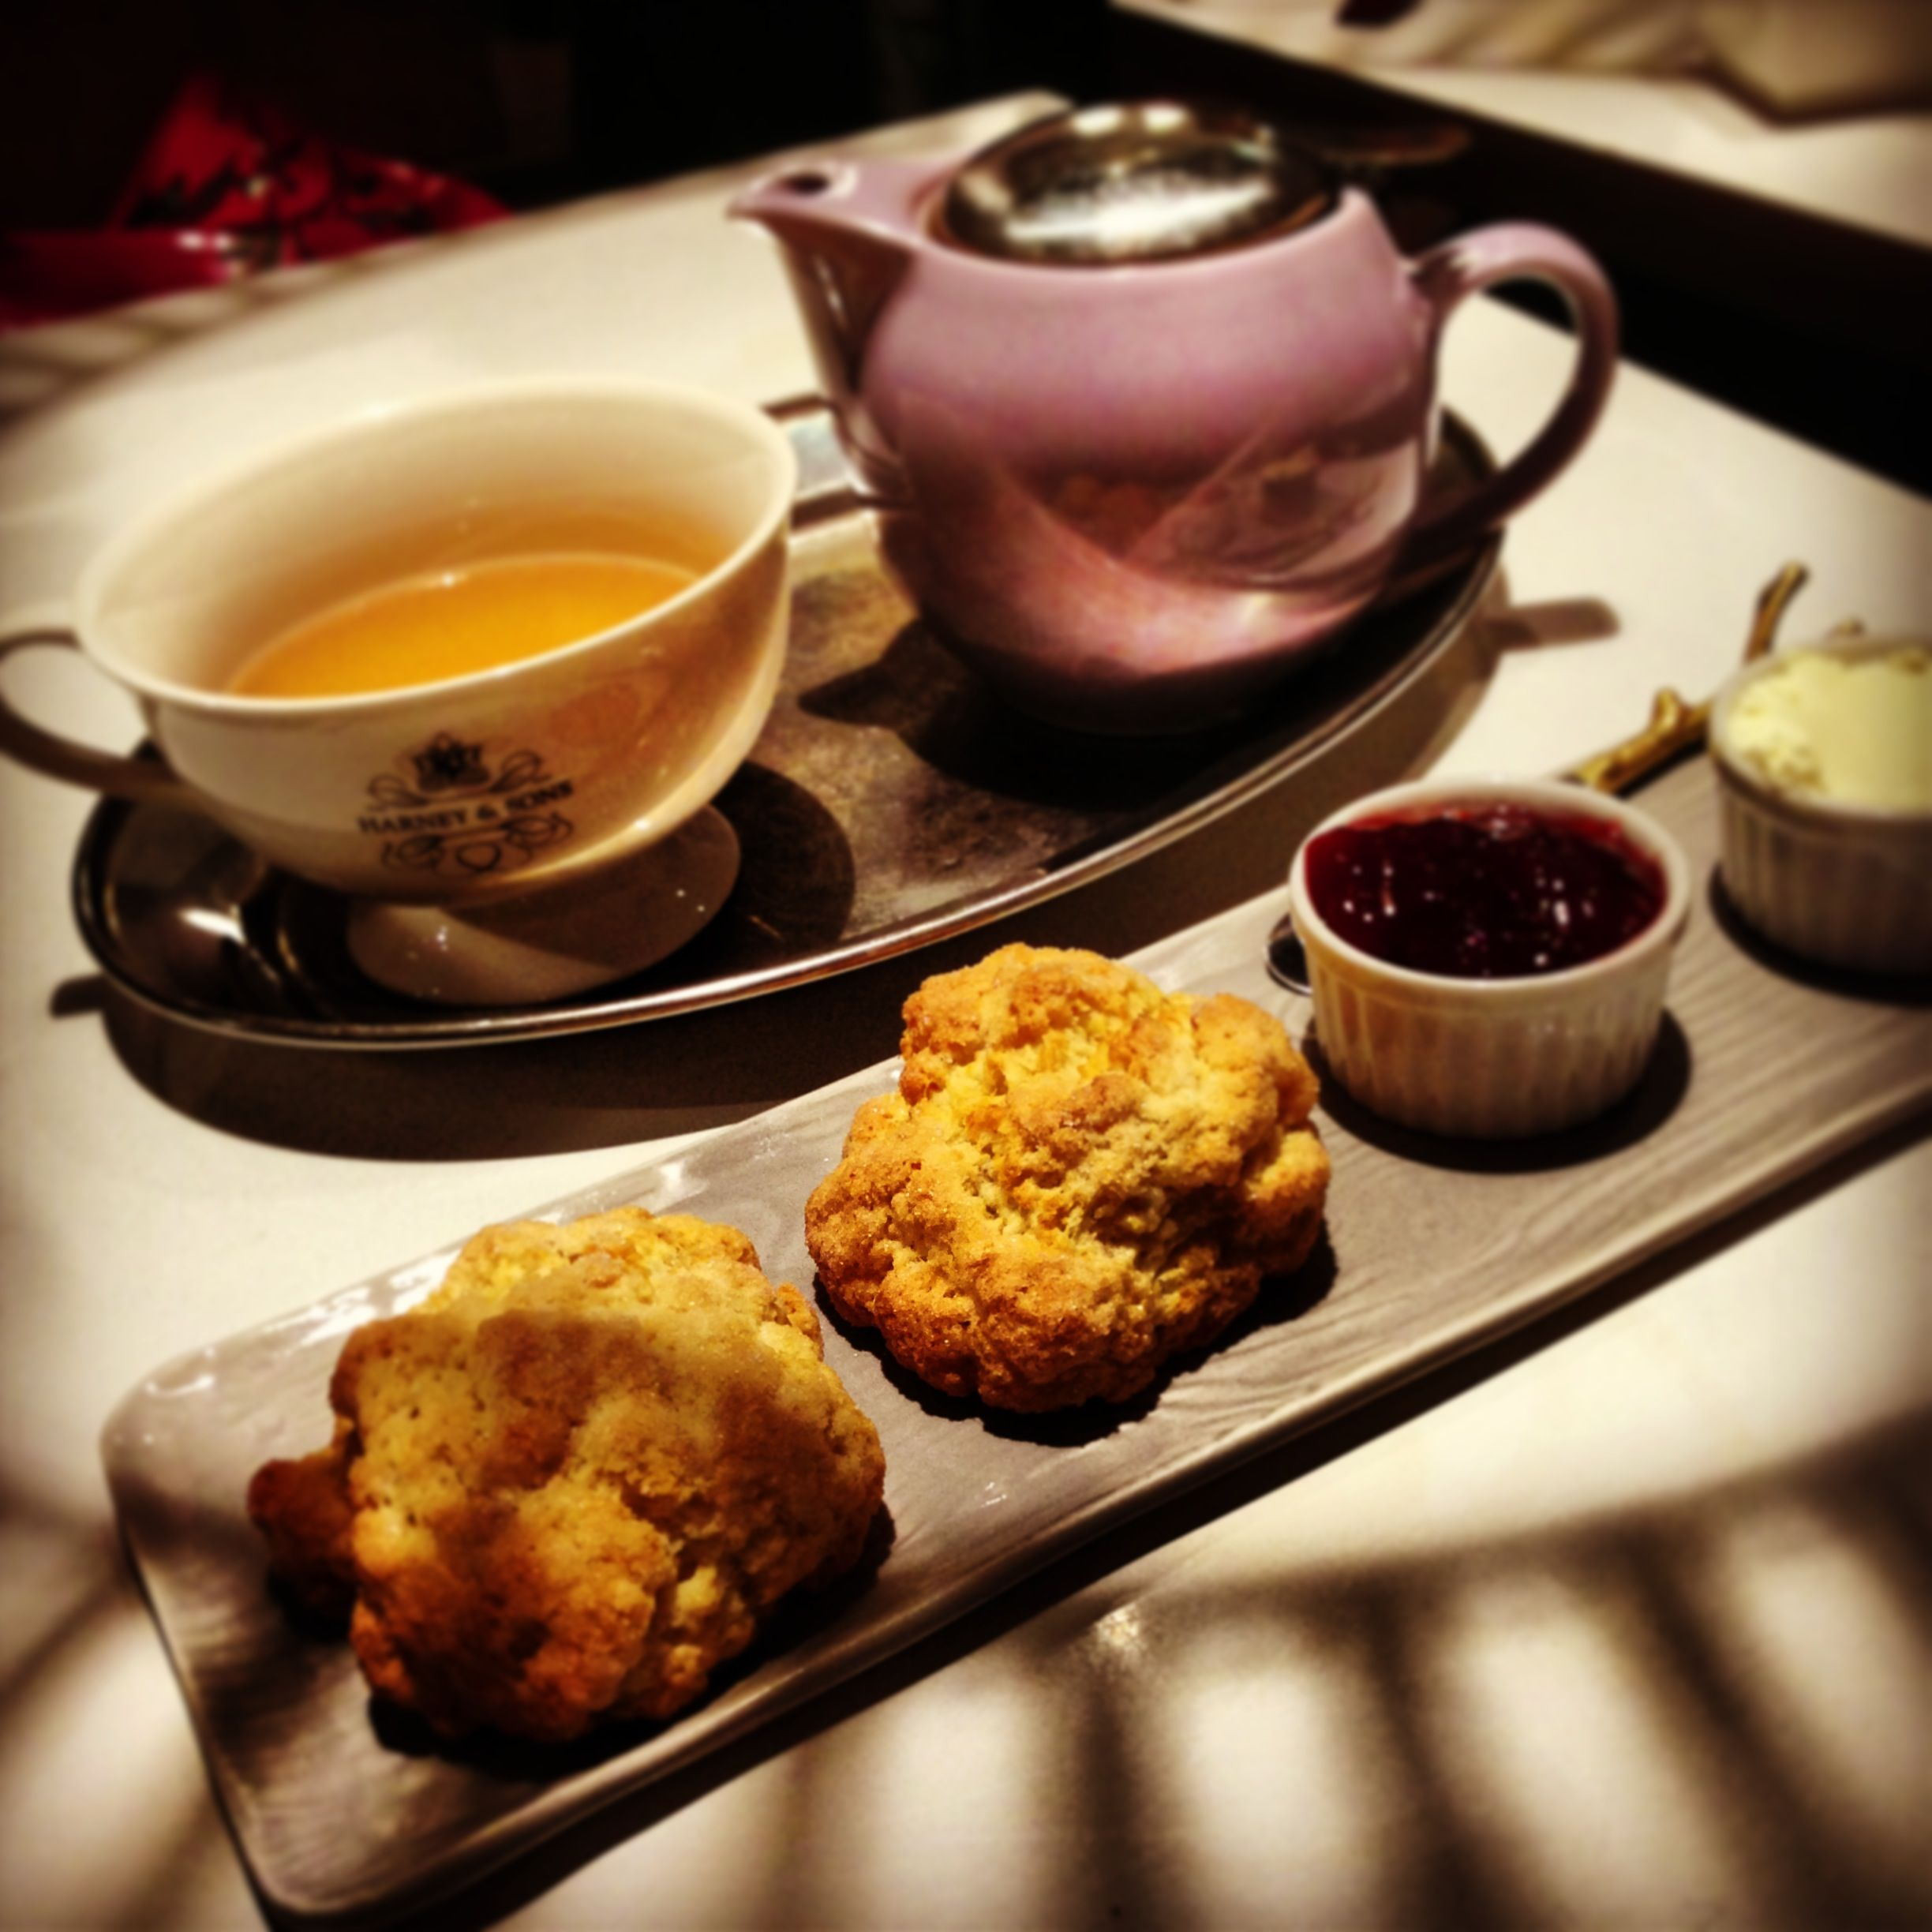 A Drink With Jam And Scones. @ Harney & Sons, SoHo